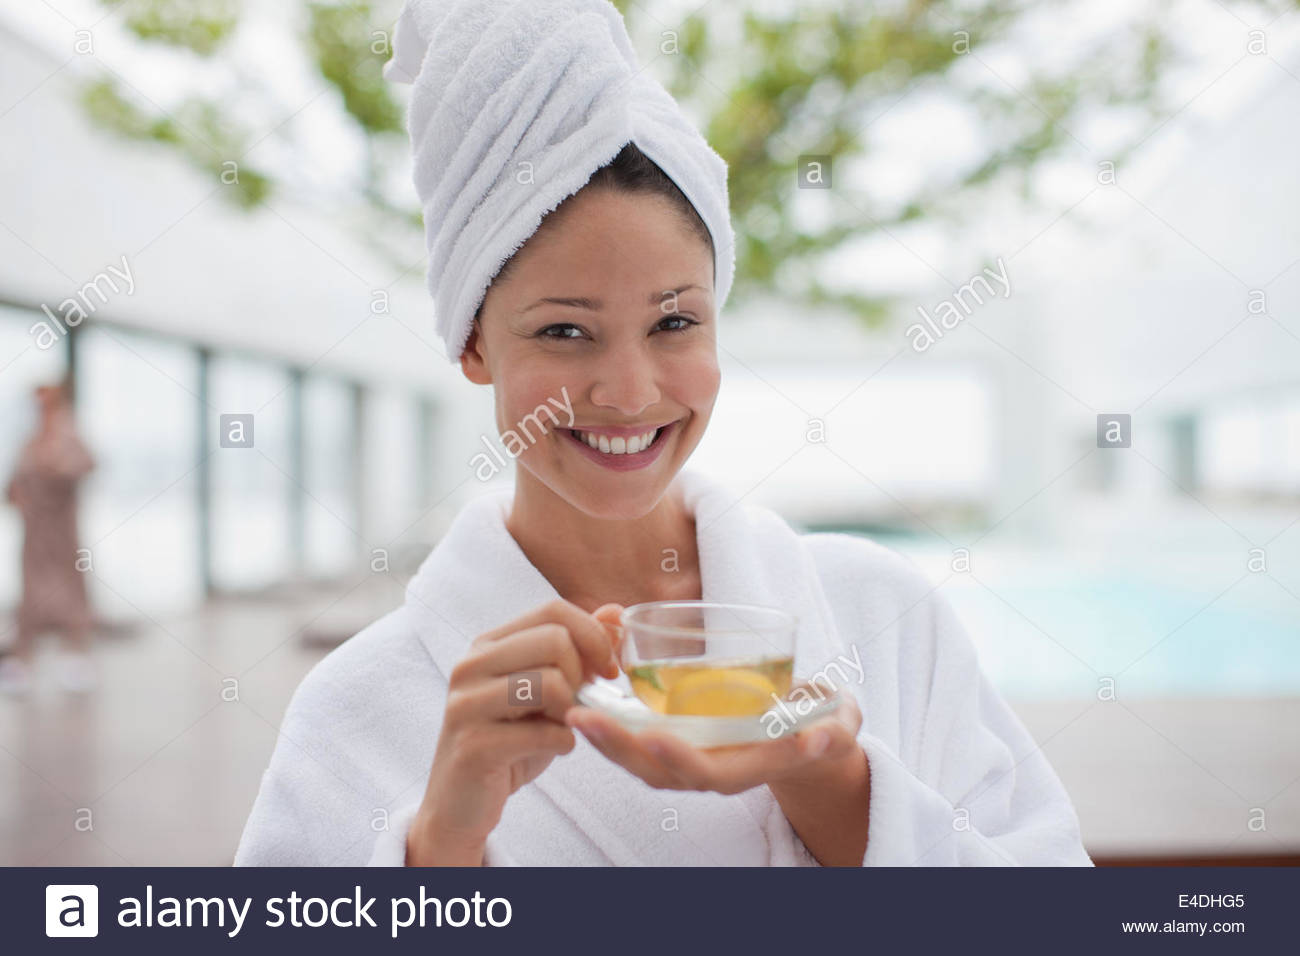 Woman with head wrapped in towel drinking tea - Stock Image